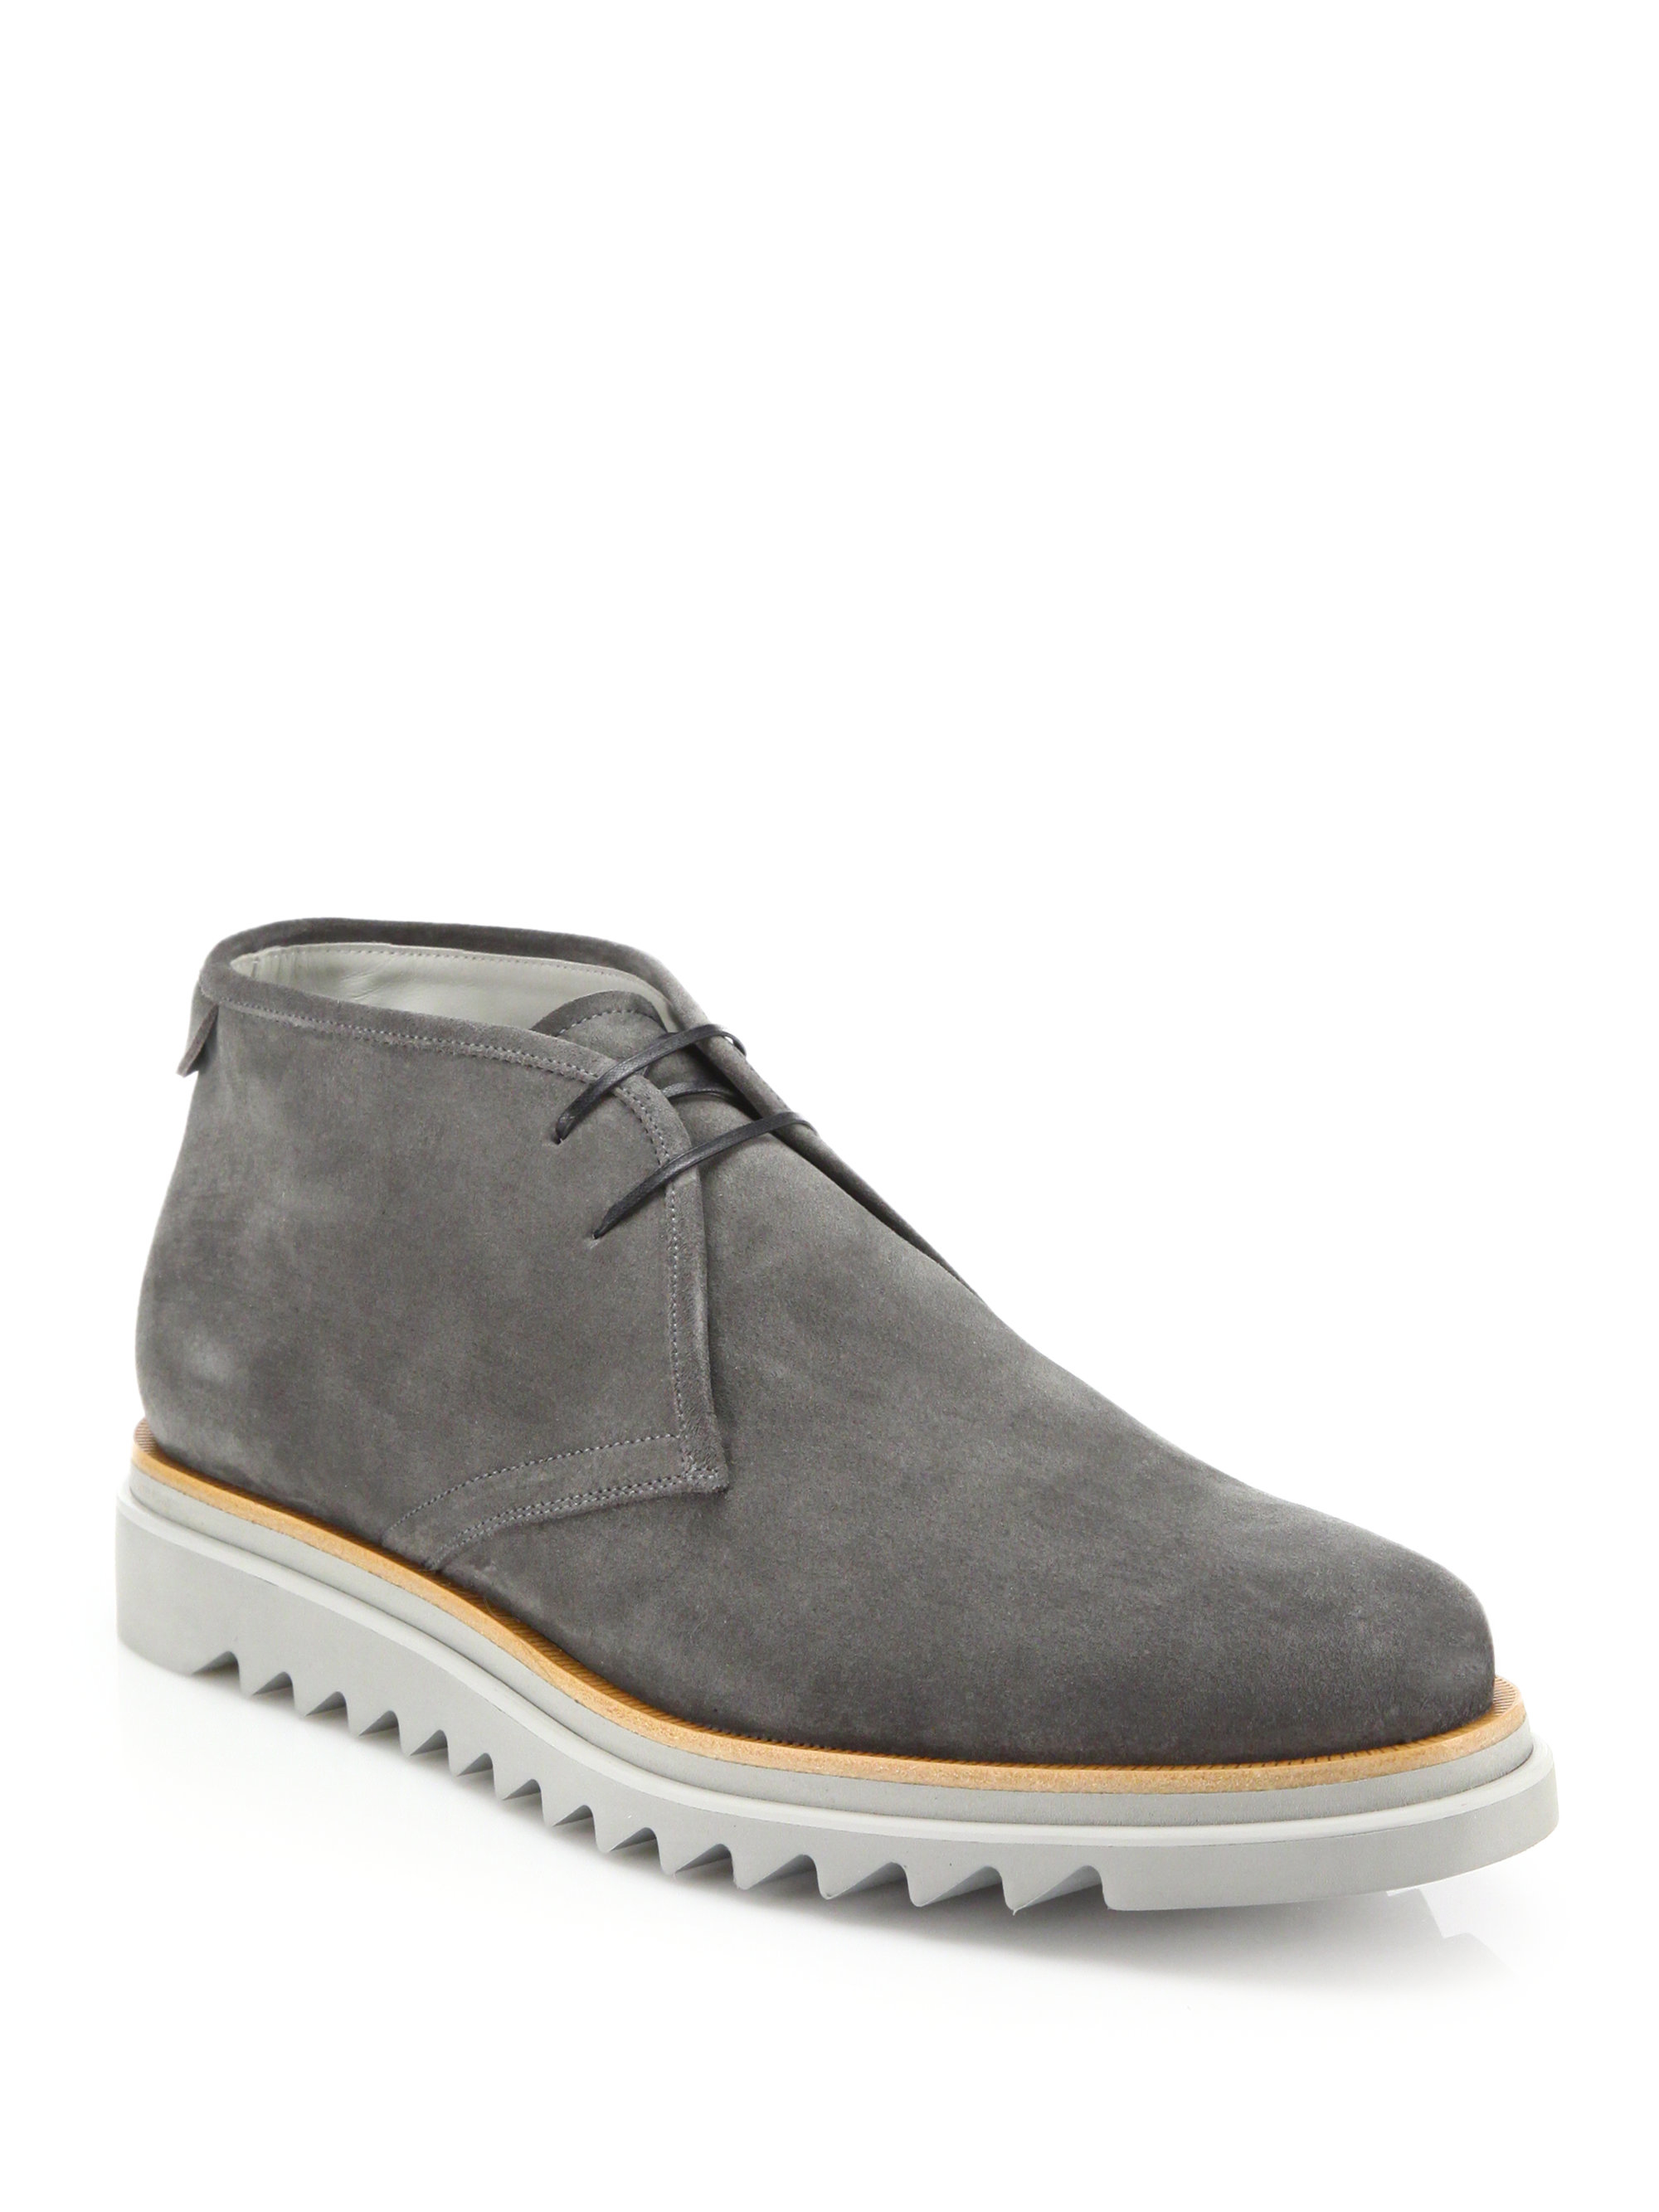 Buy Cheap Shop Offer Mens Charlie Suede Chukka Boots Salvatore Ferragamo Cheap Lowest Price 2018 New For Sale rFcwuvP